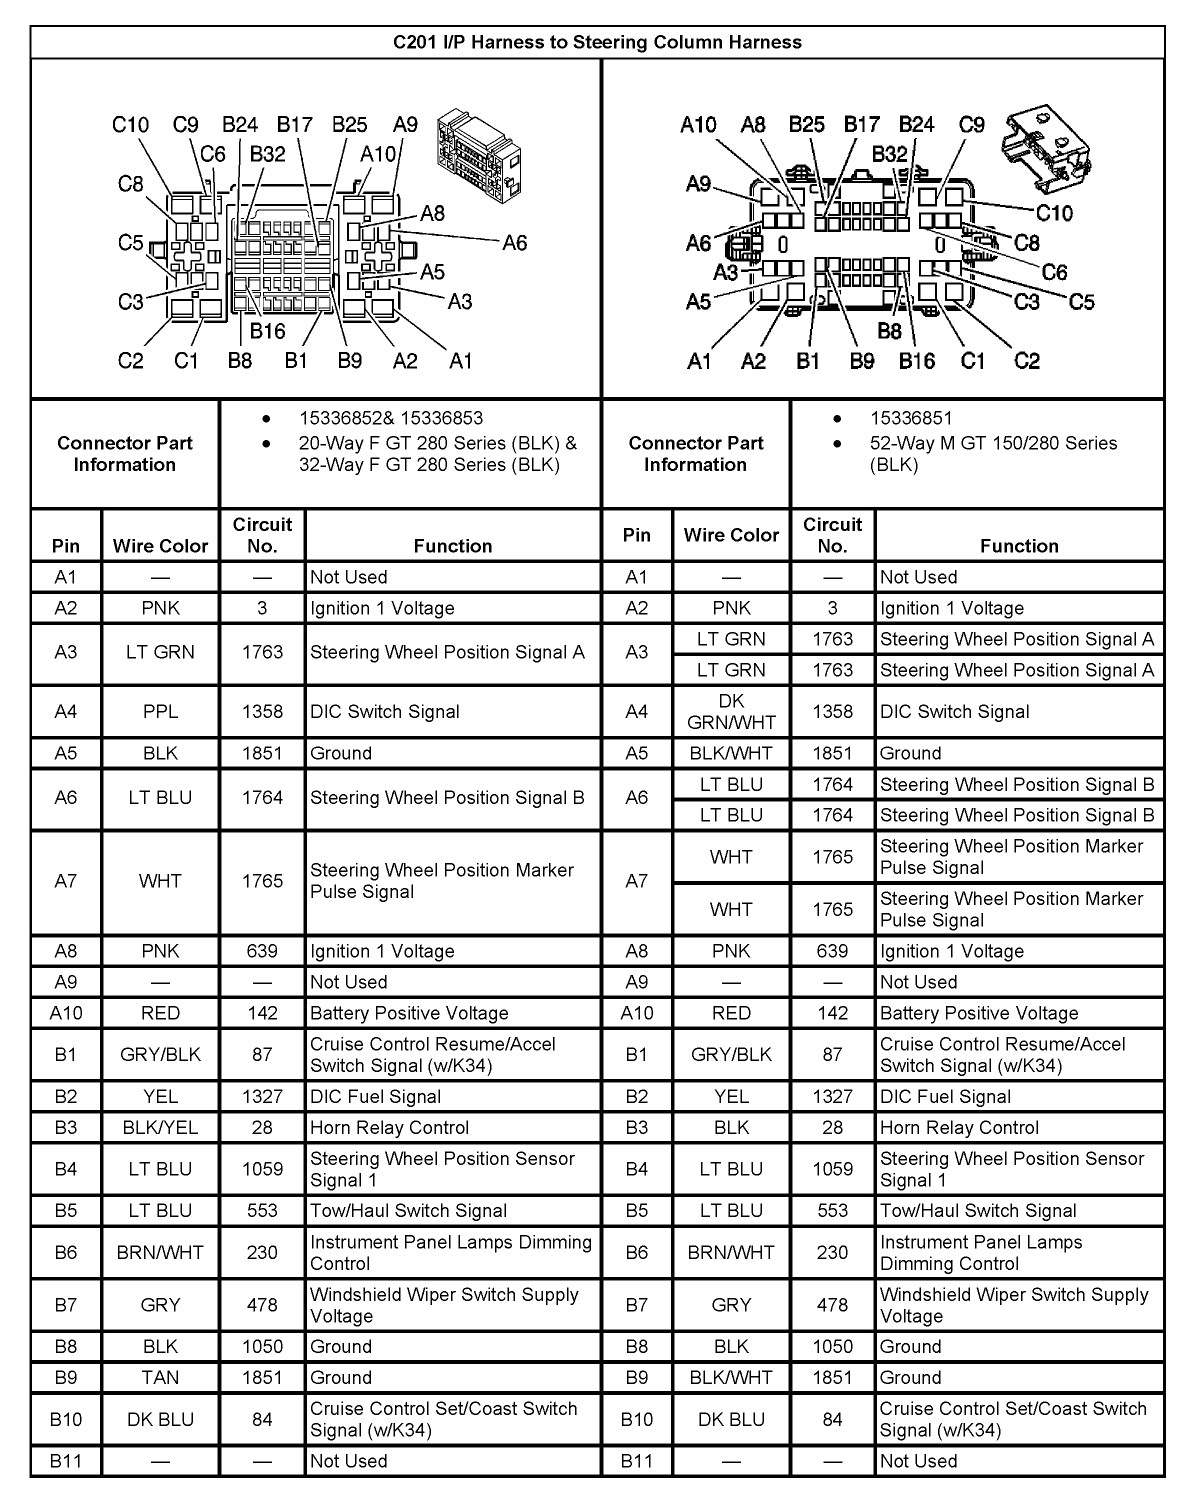 gmc sierra radio wiring diagram Collection-2005 chevy silverado radio wiring diagram best of on at gmc sierra 1 rh natebird me 2005 gmc envoy radio wiring diagram 2005 gmc sierra radio wiring diagram 13-j